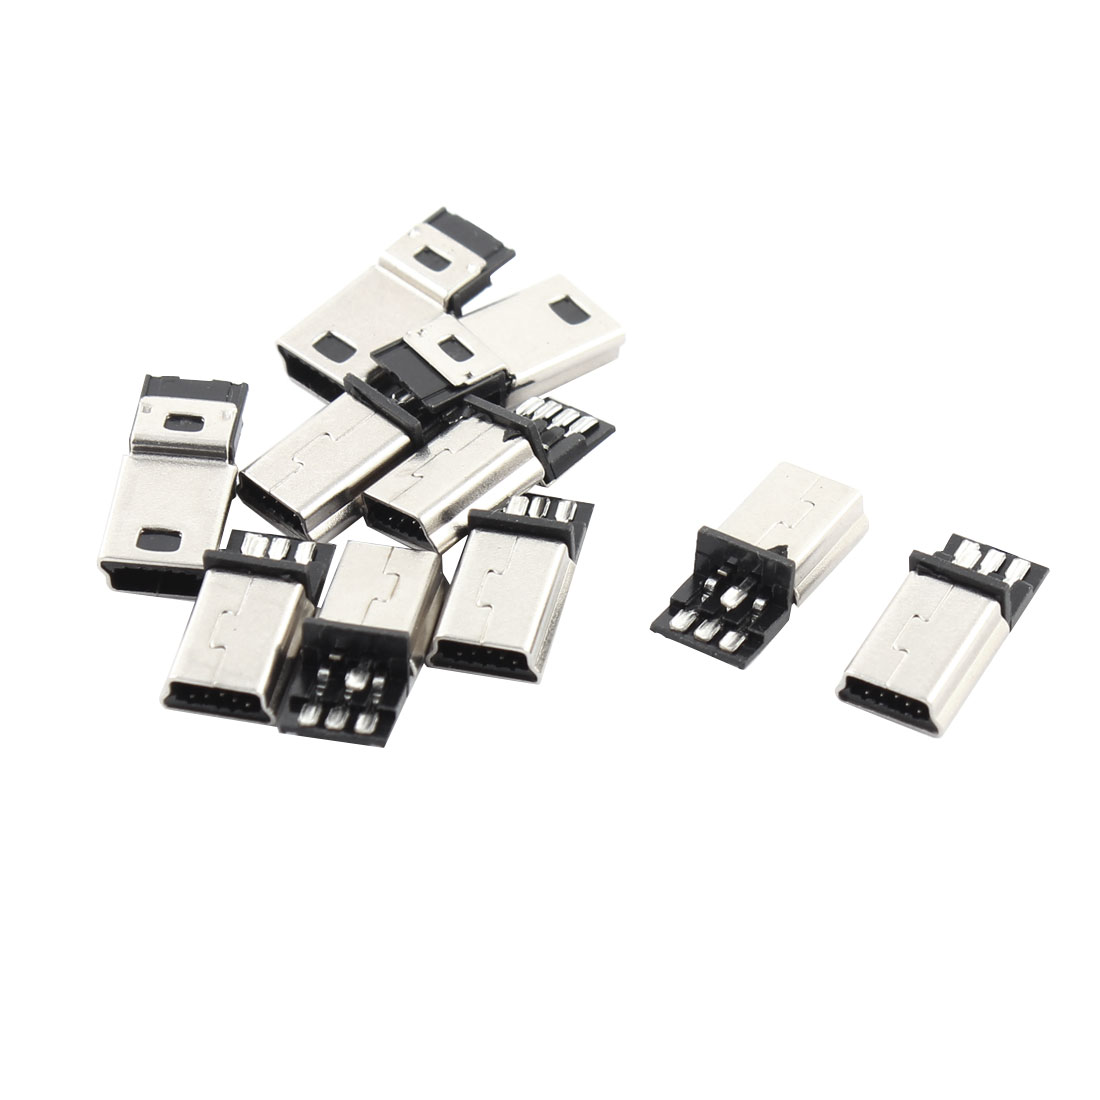 10 Pcs Usb 5 Pin B Male Connector Port Solder Plug Replacement